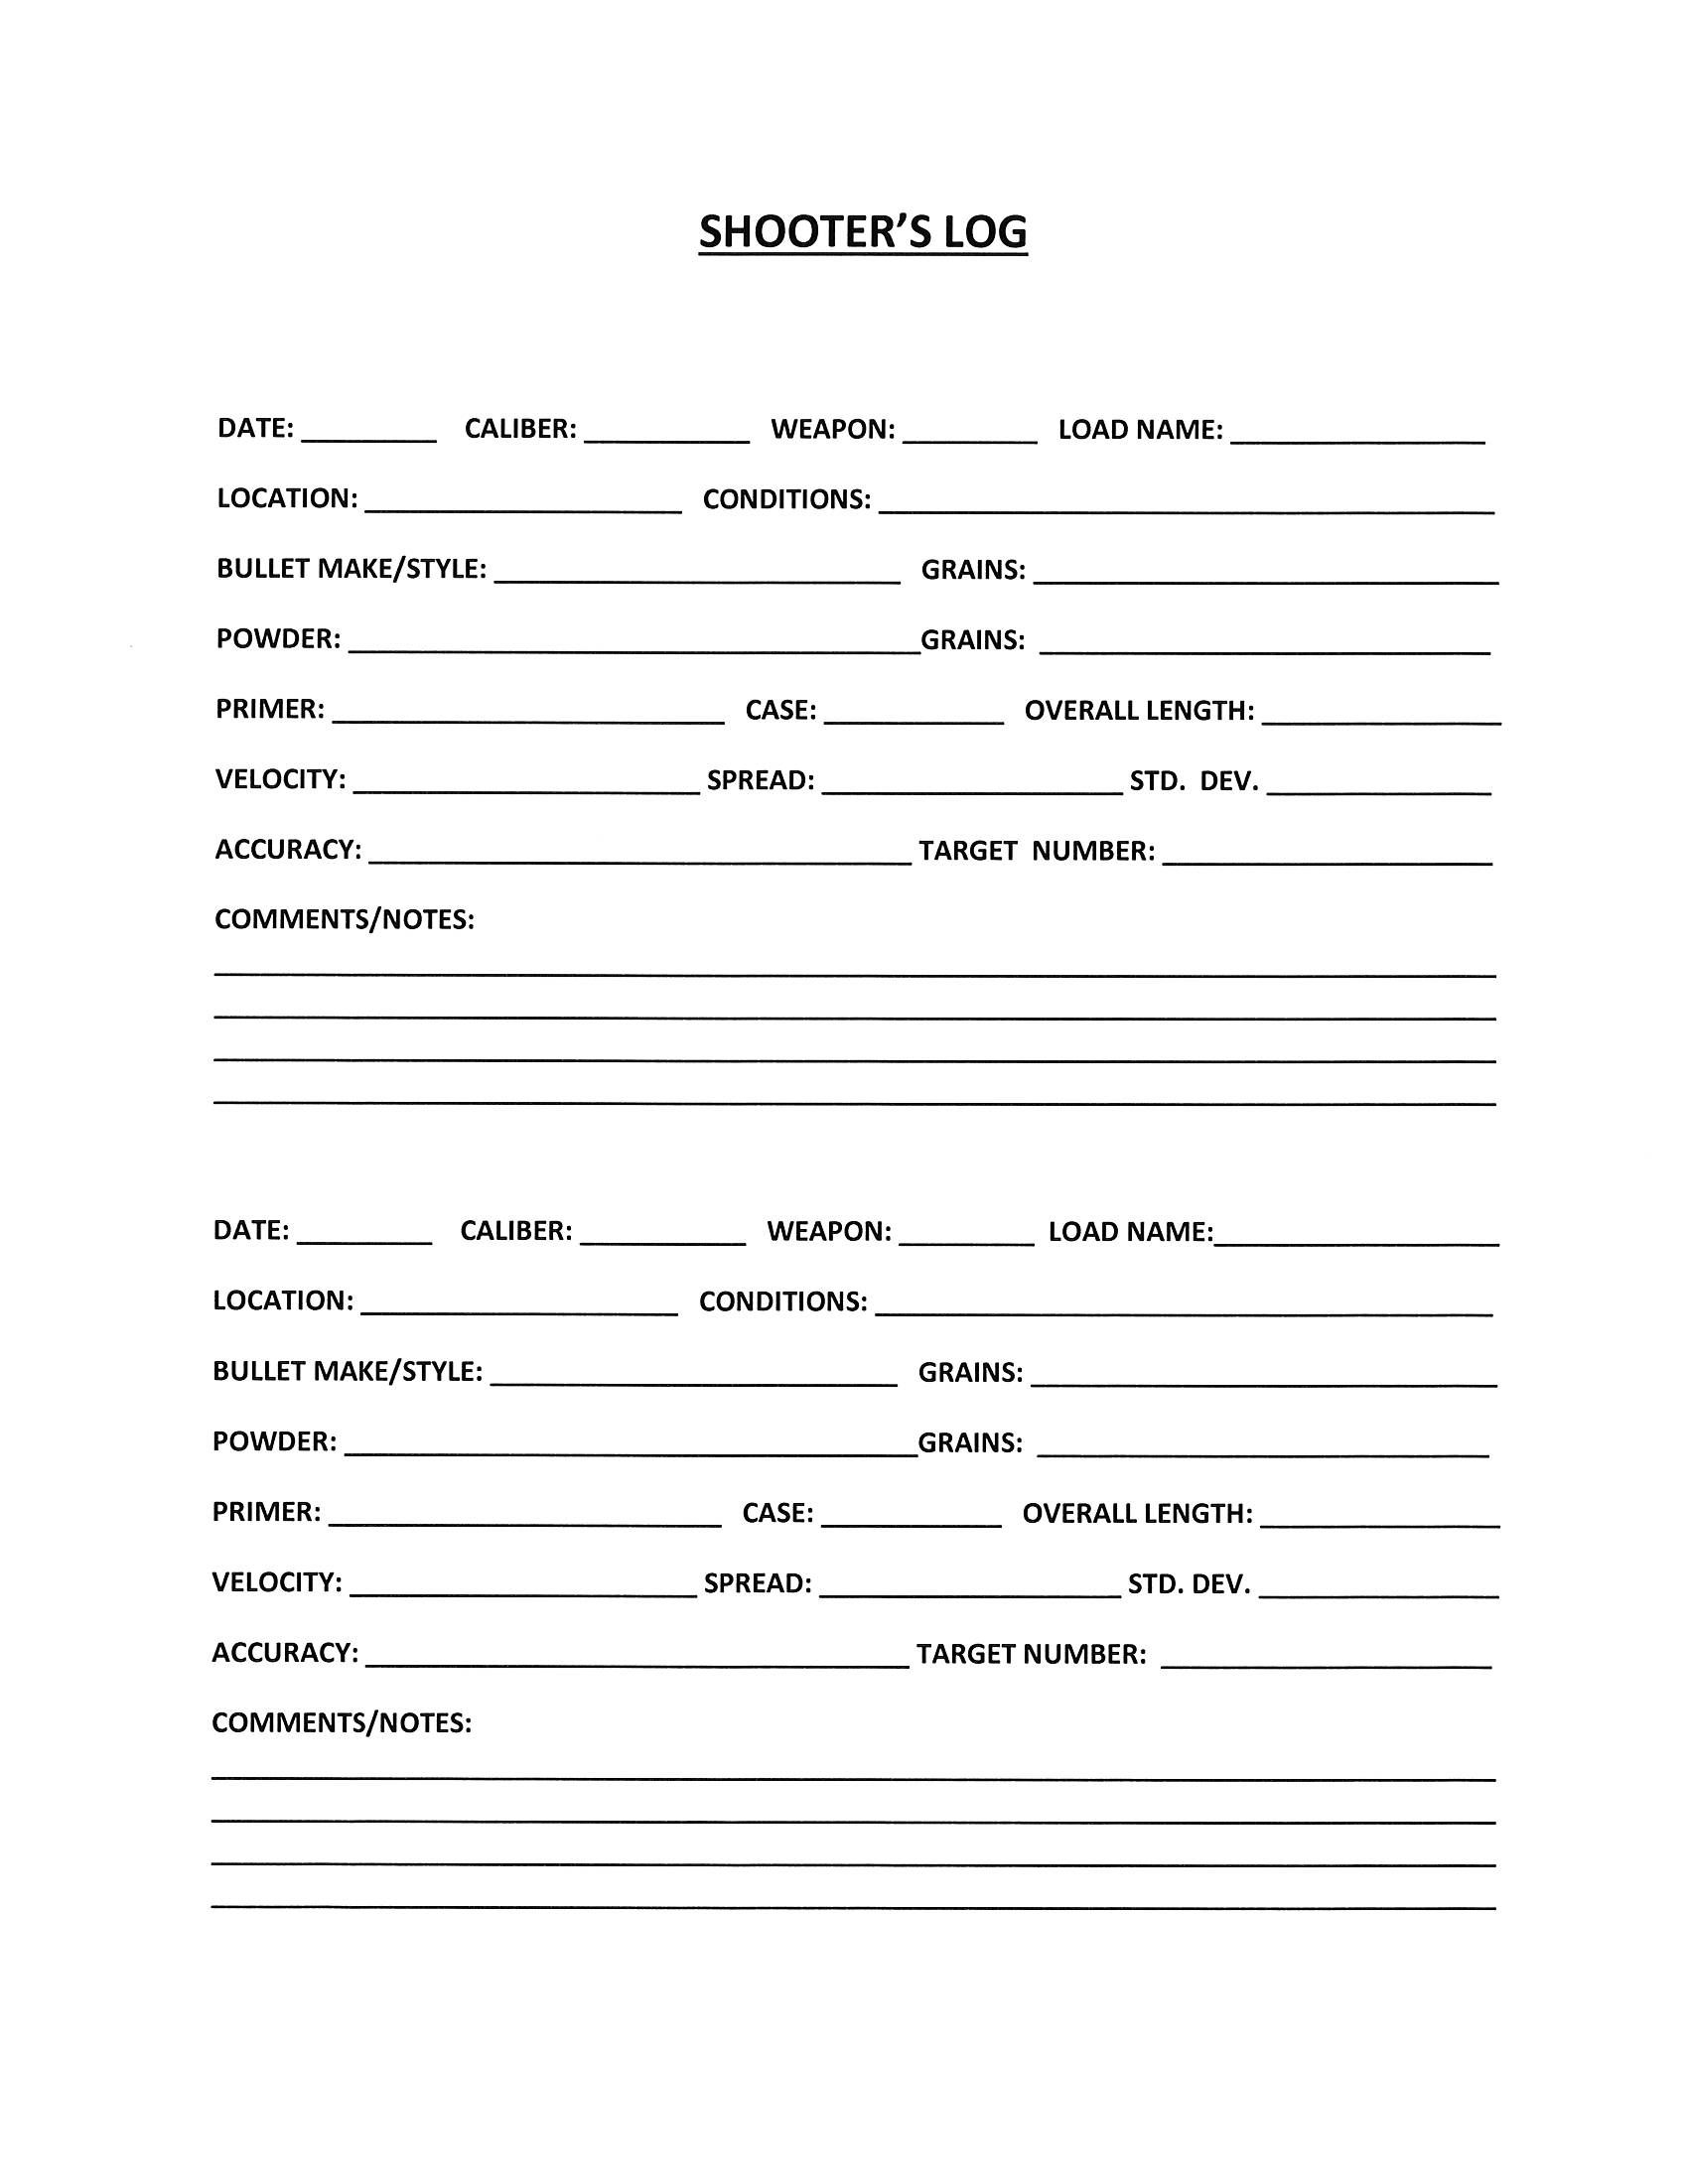 photo about Printable Firearm Log called Totally free Printable Shooters Log! Print off numerous copies in the direction of